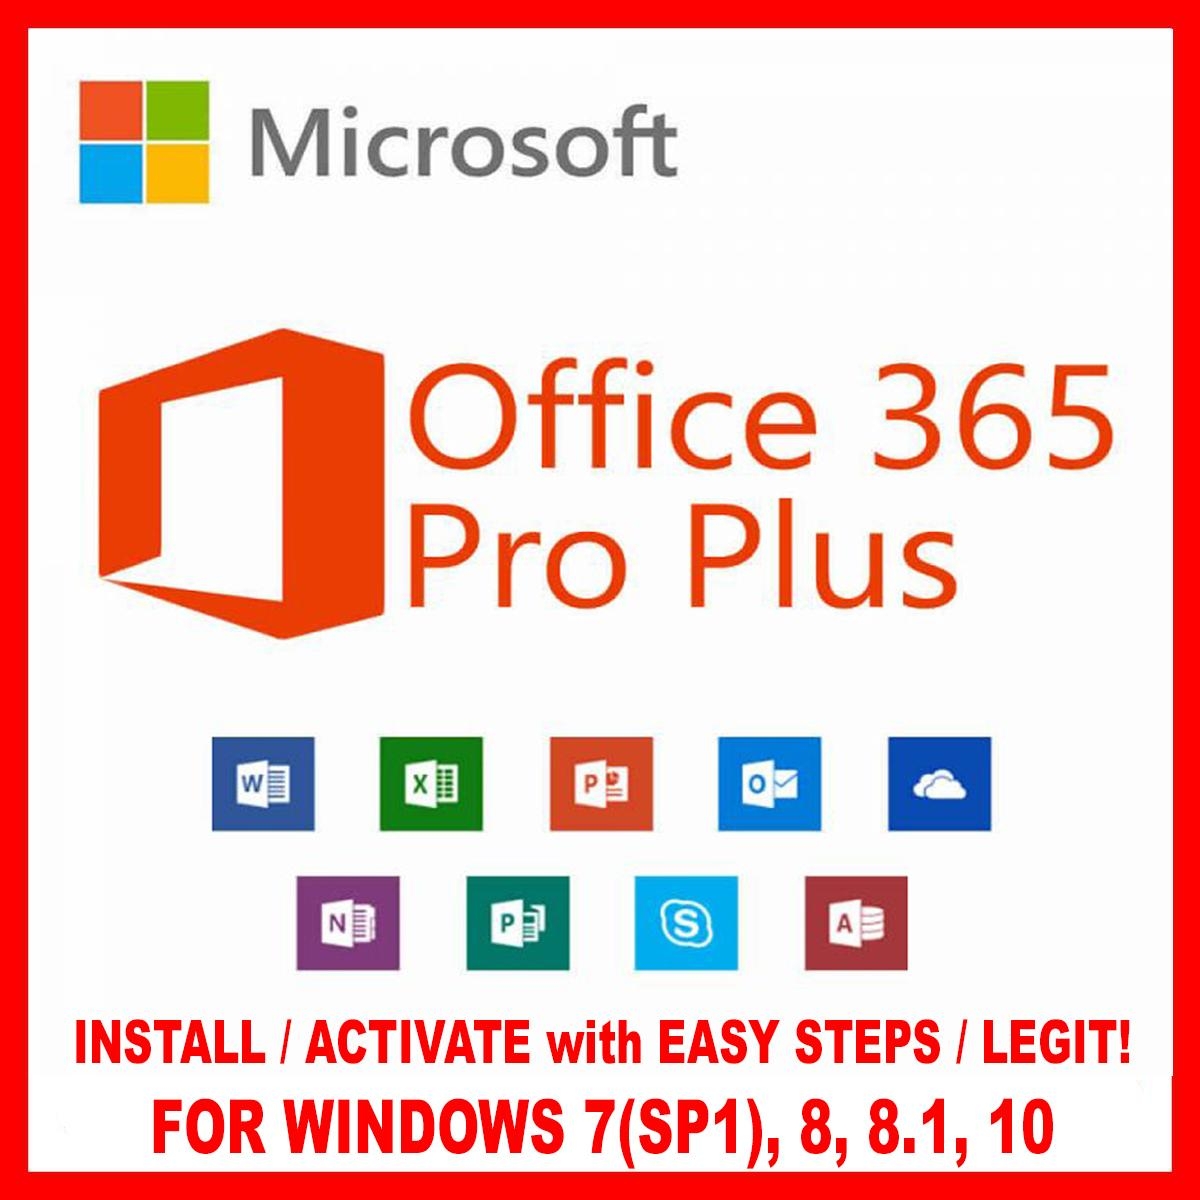 Microsoft Office Windows 7 Ms Microsoft Office 365 Pro Plus With 2019 Updates Word Excel Powerpoint Etc For Windows 10 8 1 8 7 Service Pack 1 Installer Comes With